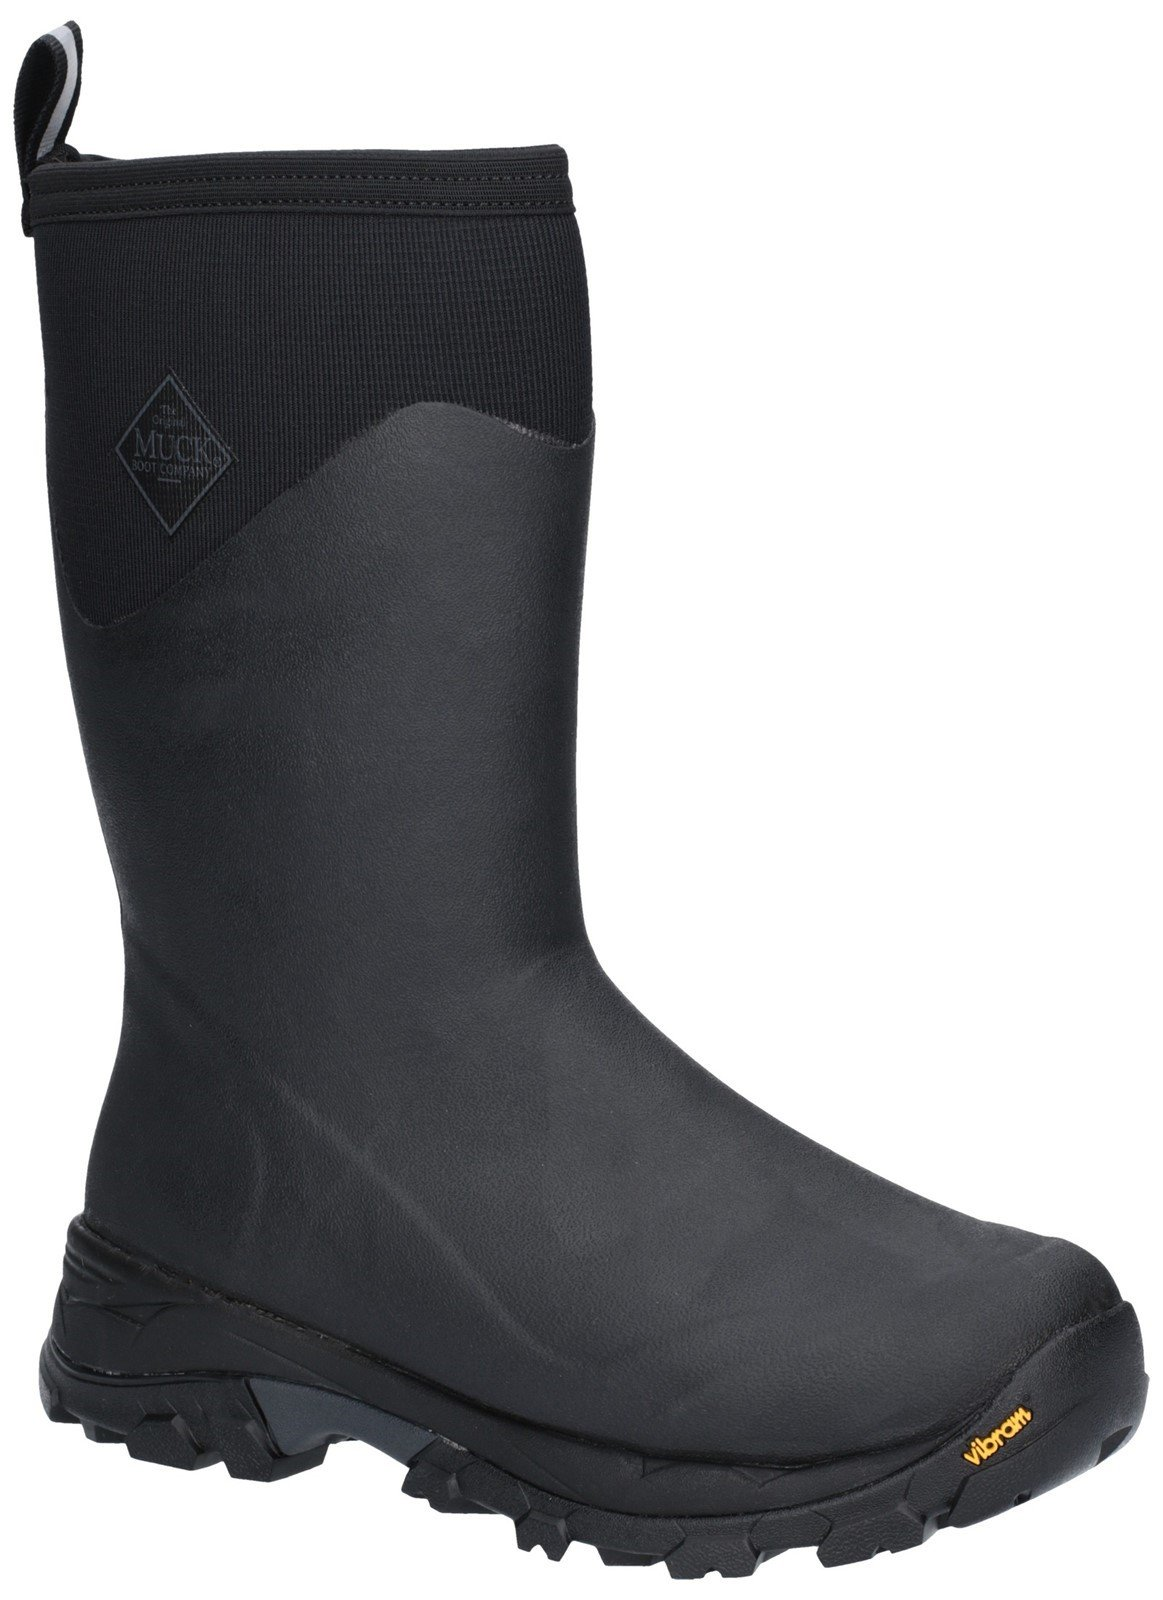 Muck Boots Unisex Arctic Ice Mid Boot Various Colours 27614 - Black 6